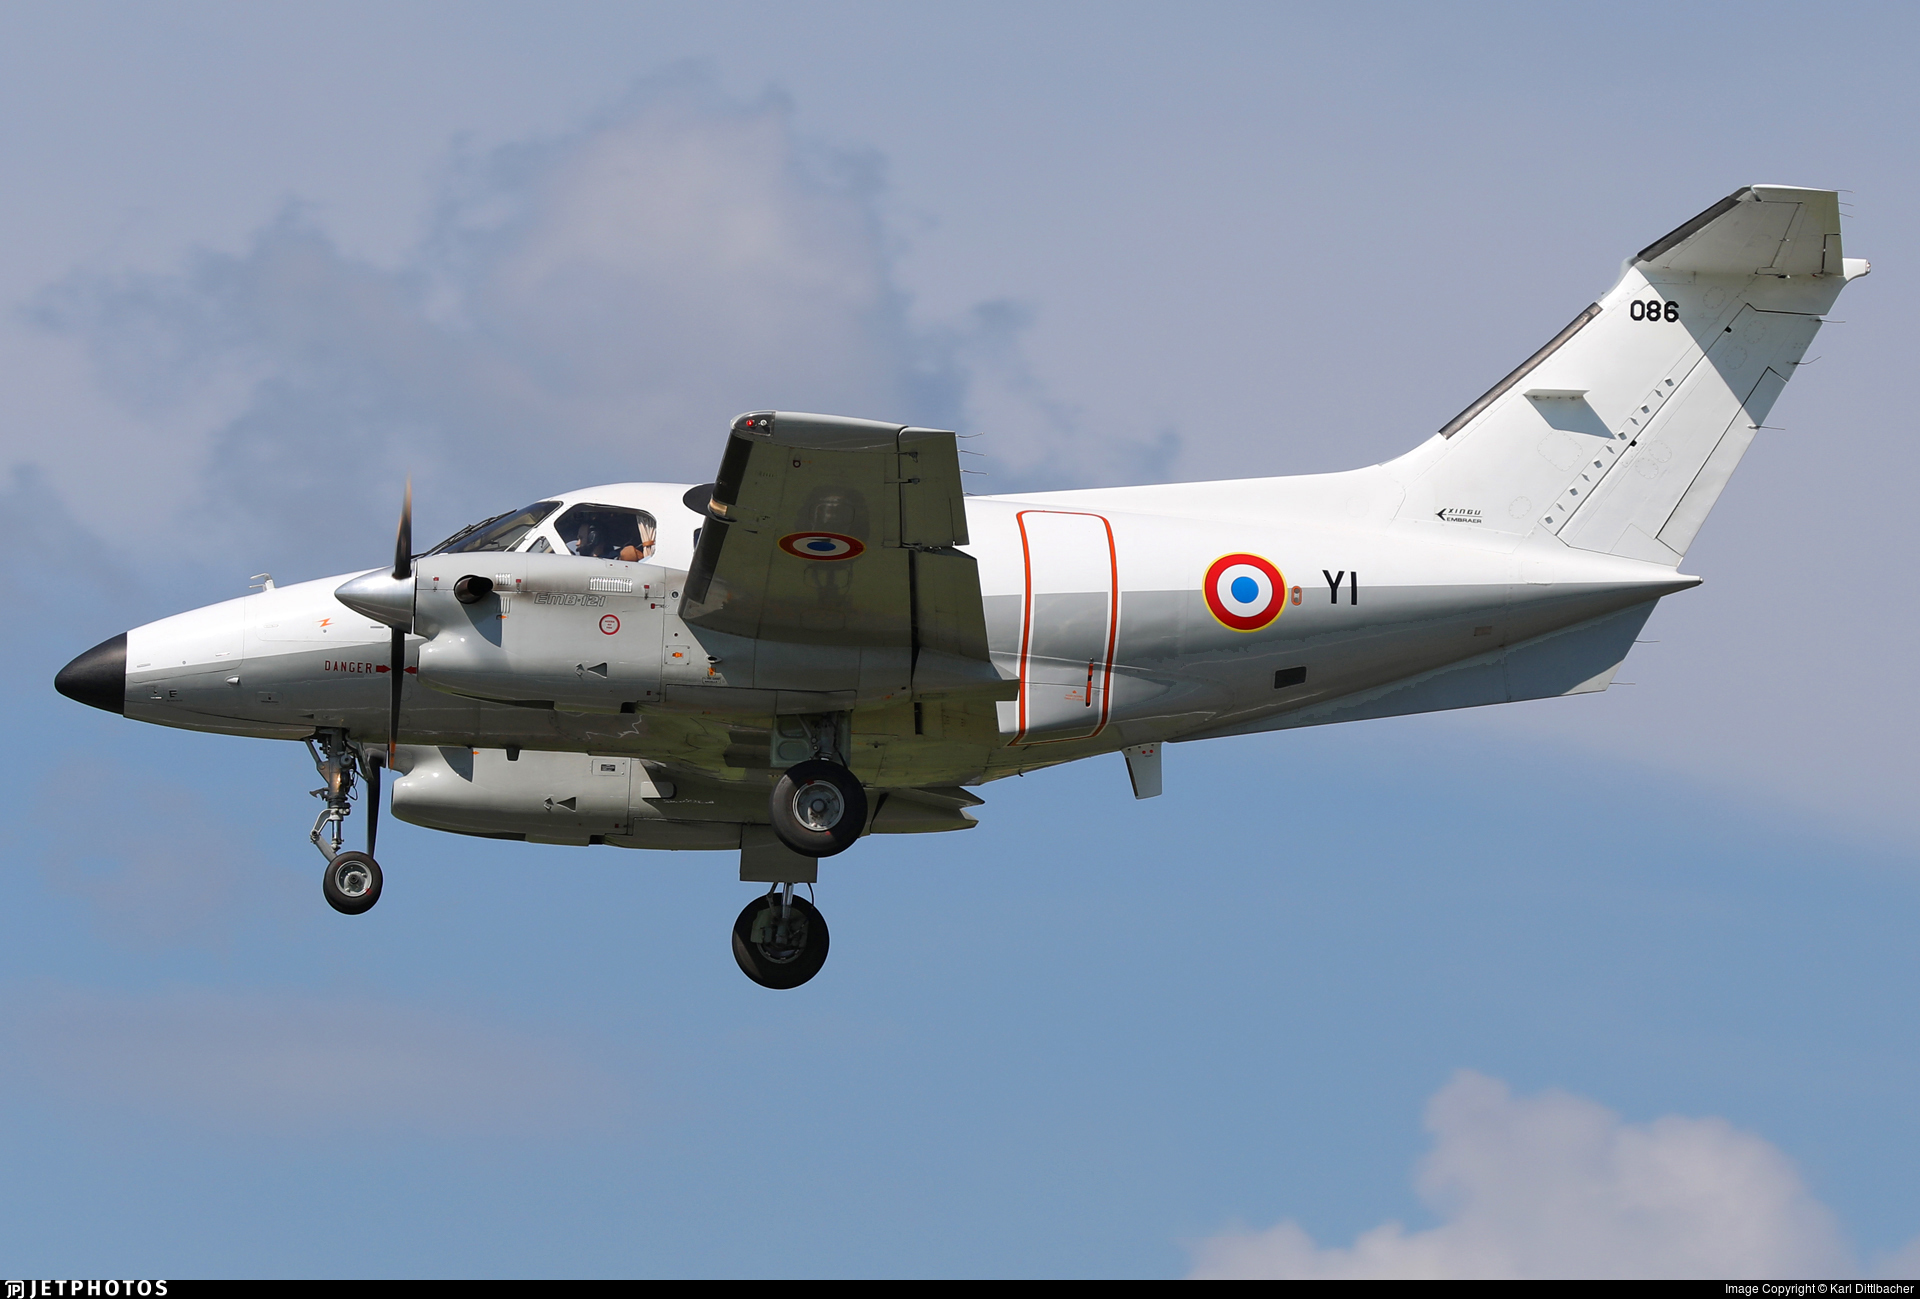 086 - Embraer EMB-121 Xingú - France - Air Force